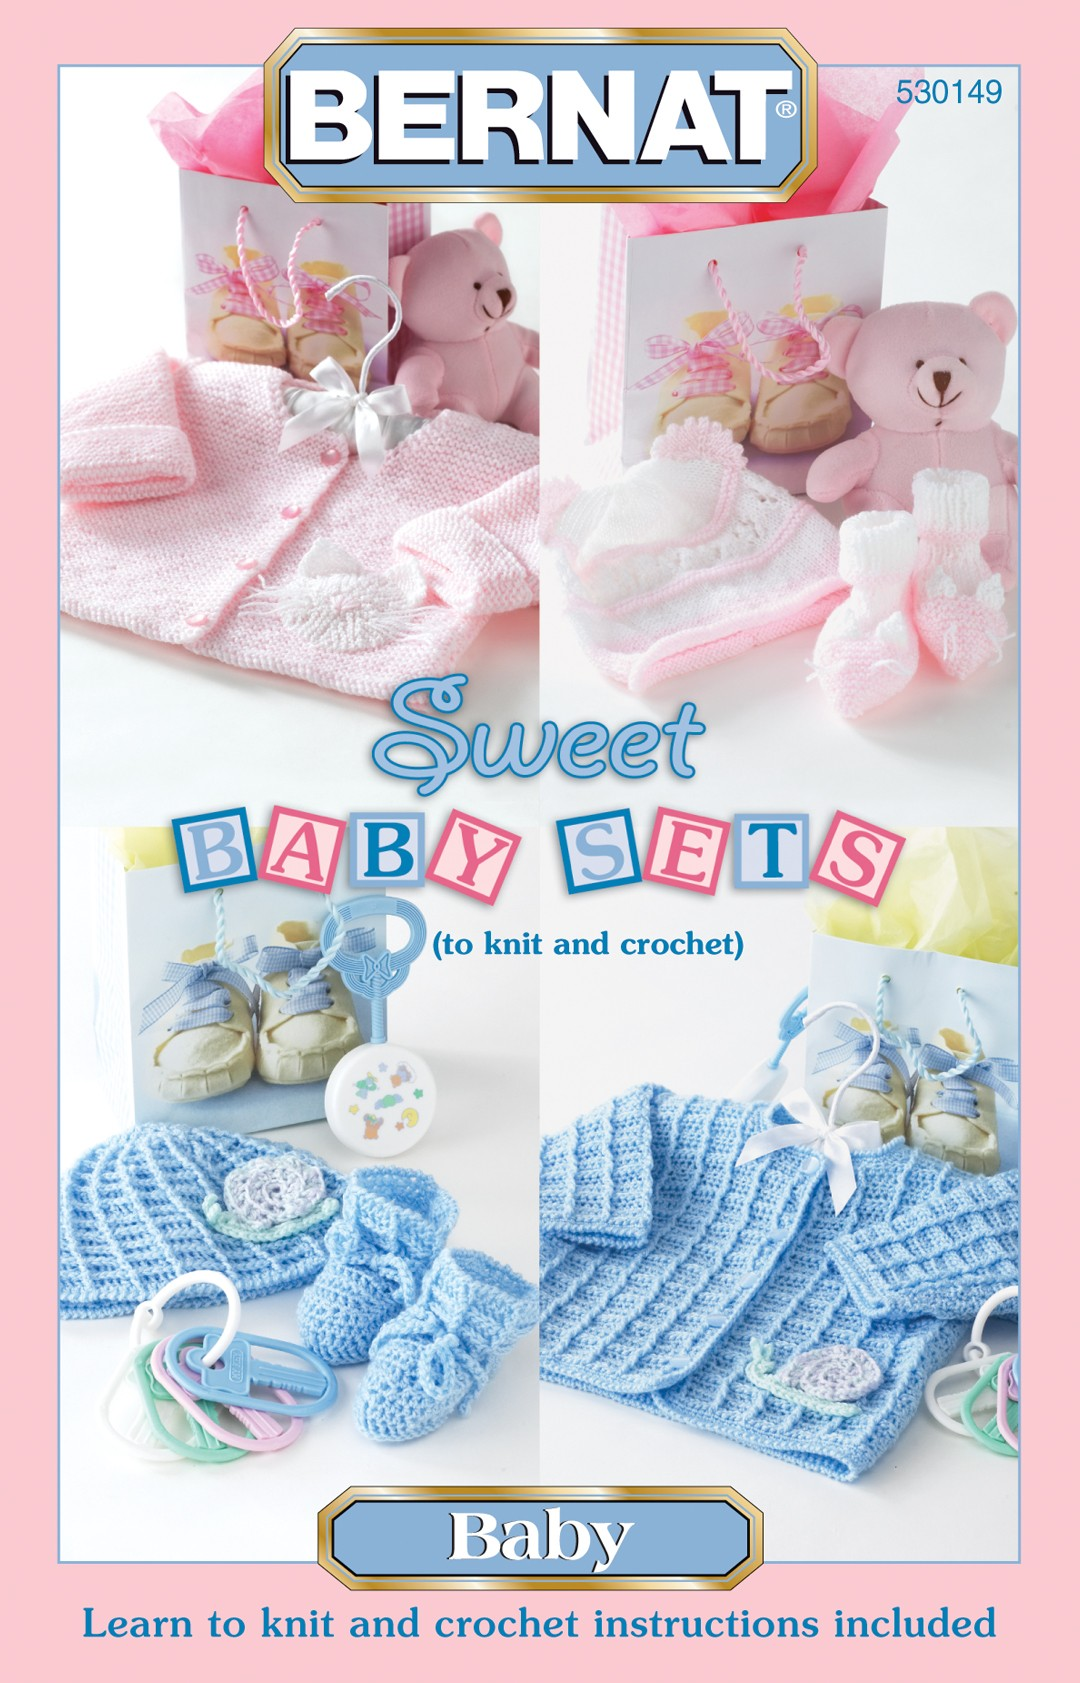 Sweet Baby Sets